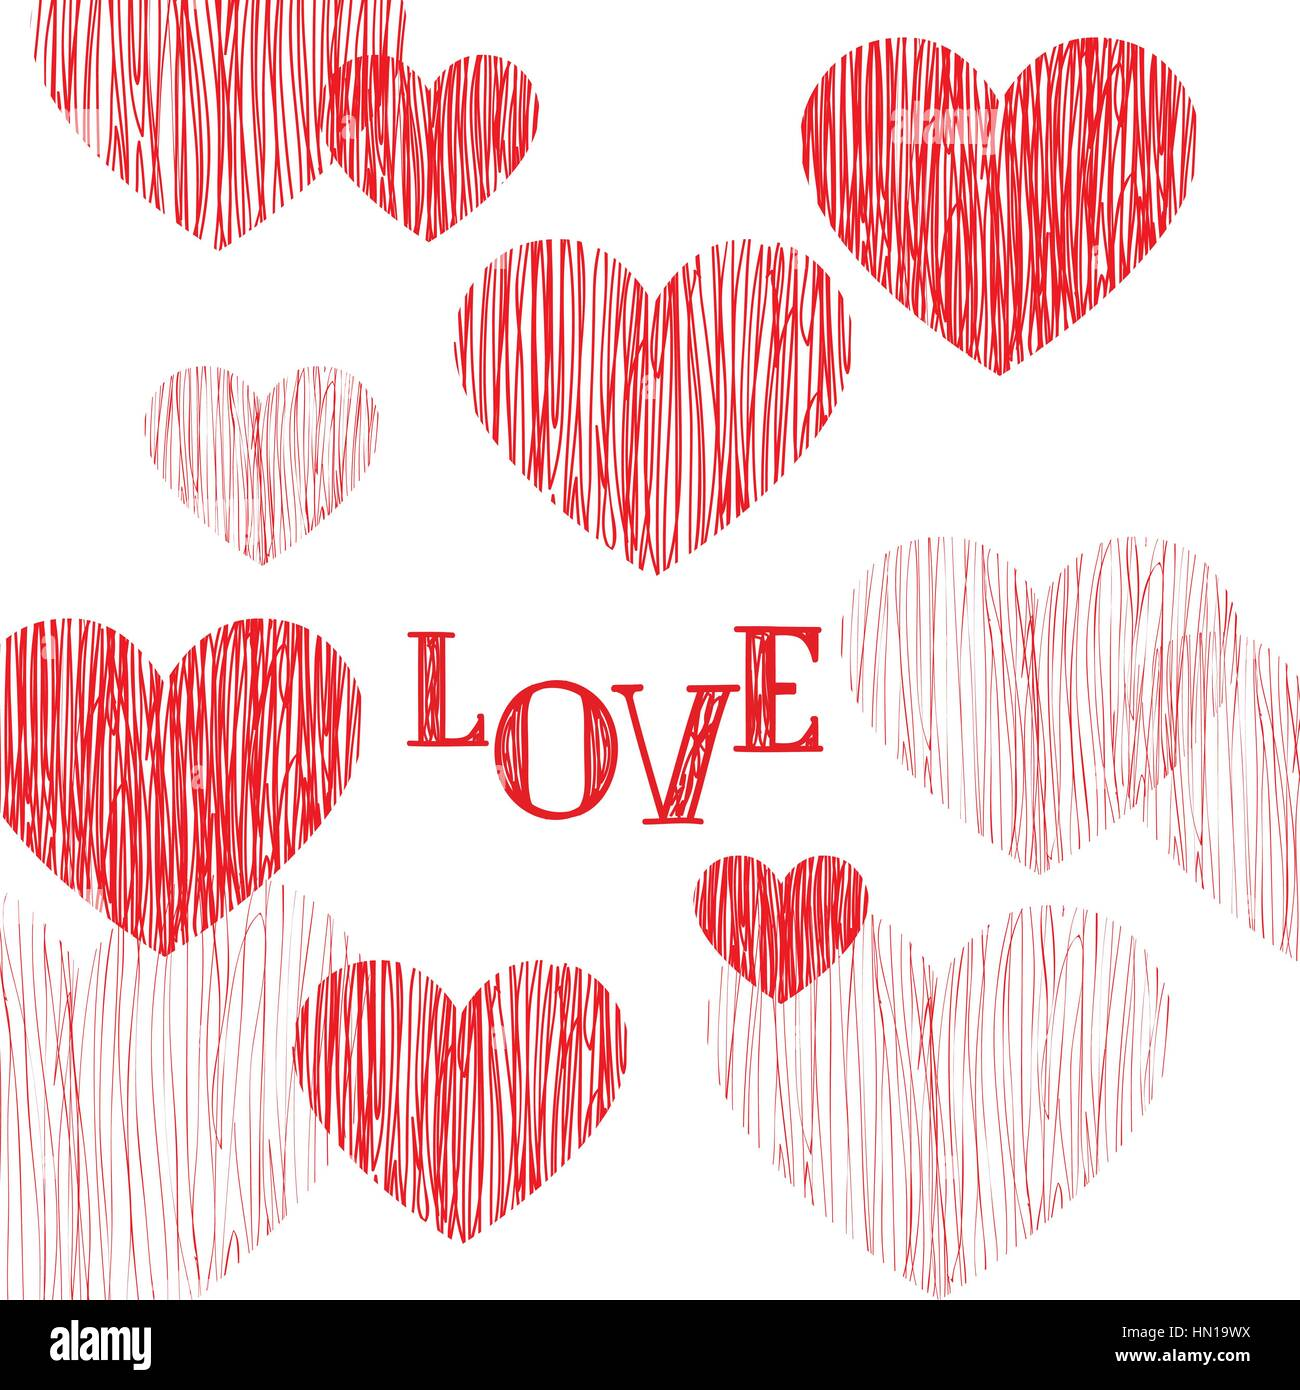 Love pattern happy valentines day card love heart pencil sketch happy valentines day card love heart pencil sketch background valentines day greeting card design m4hsunfo Choice Image